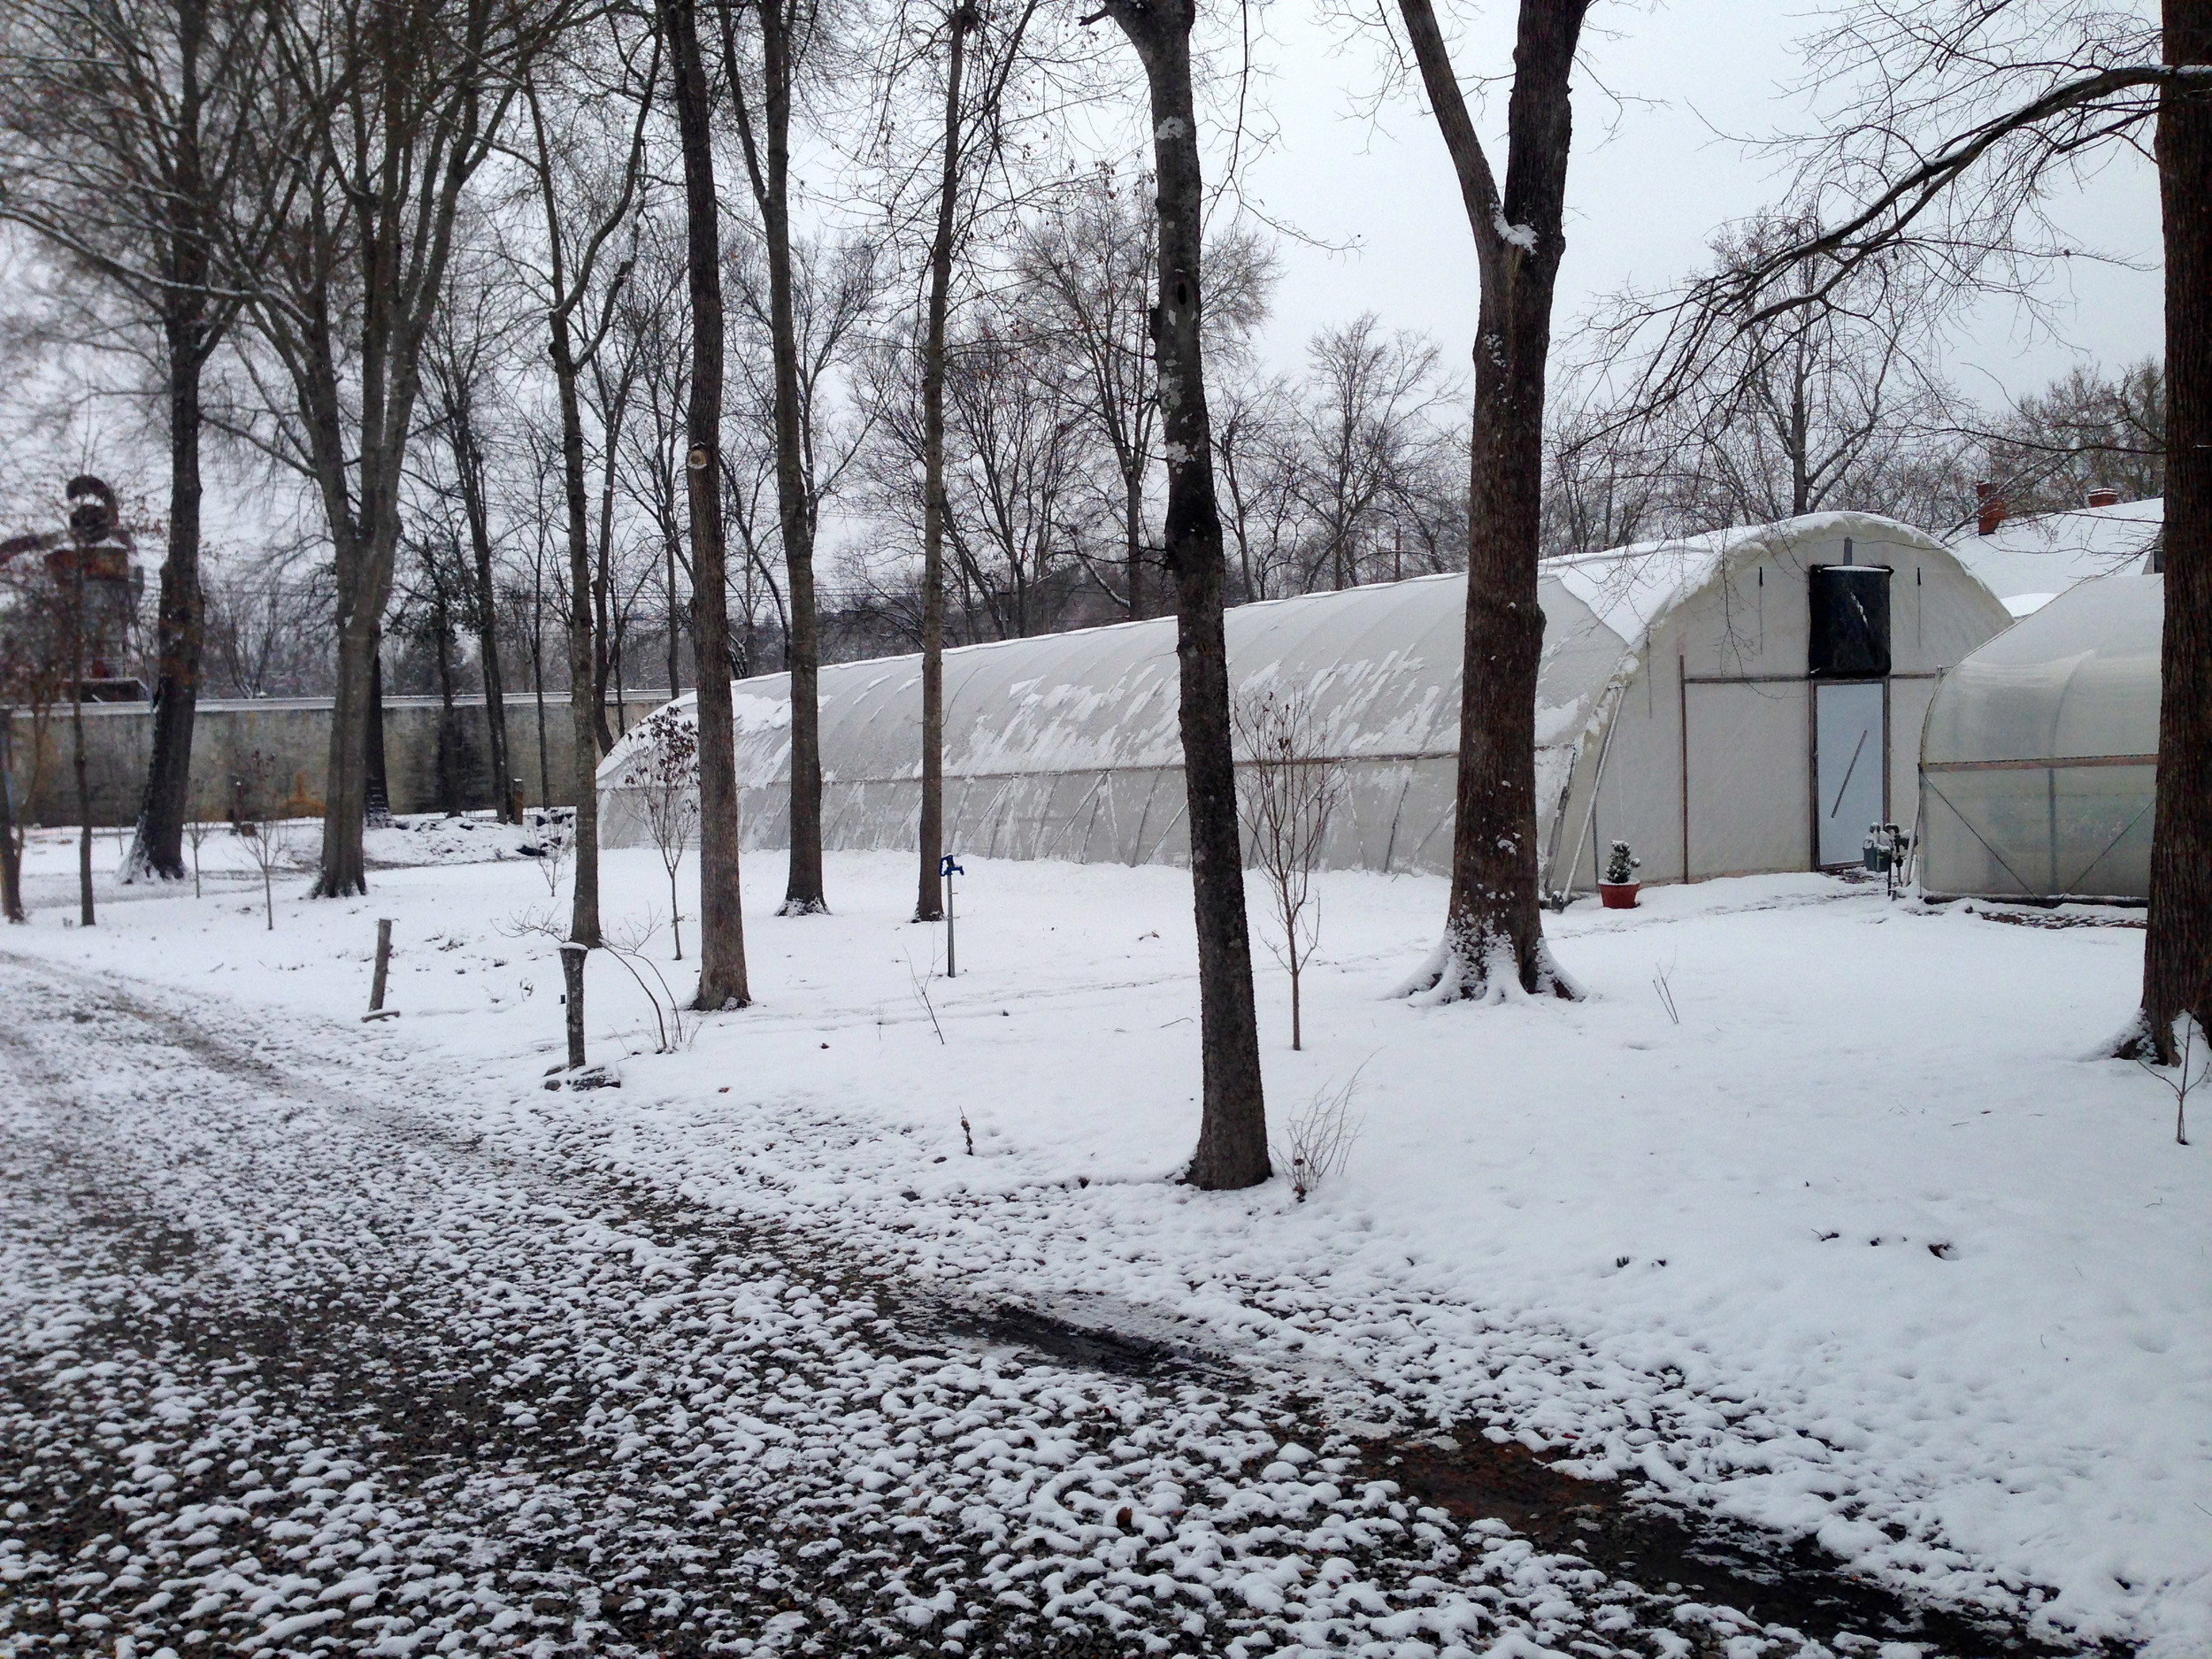 Snow is already starting to slide off the hoop house structures. The area under the trees should be filled with daffidils soon.